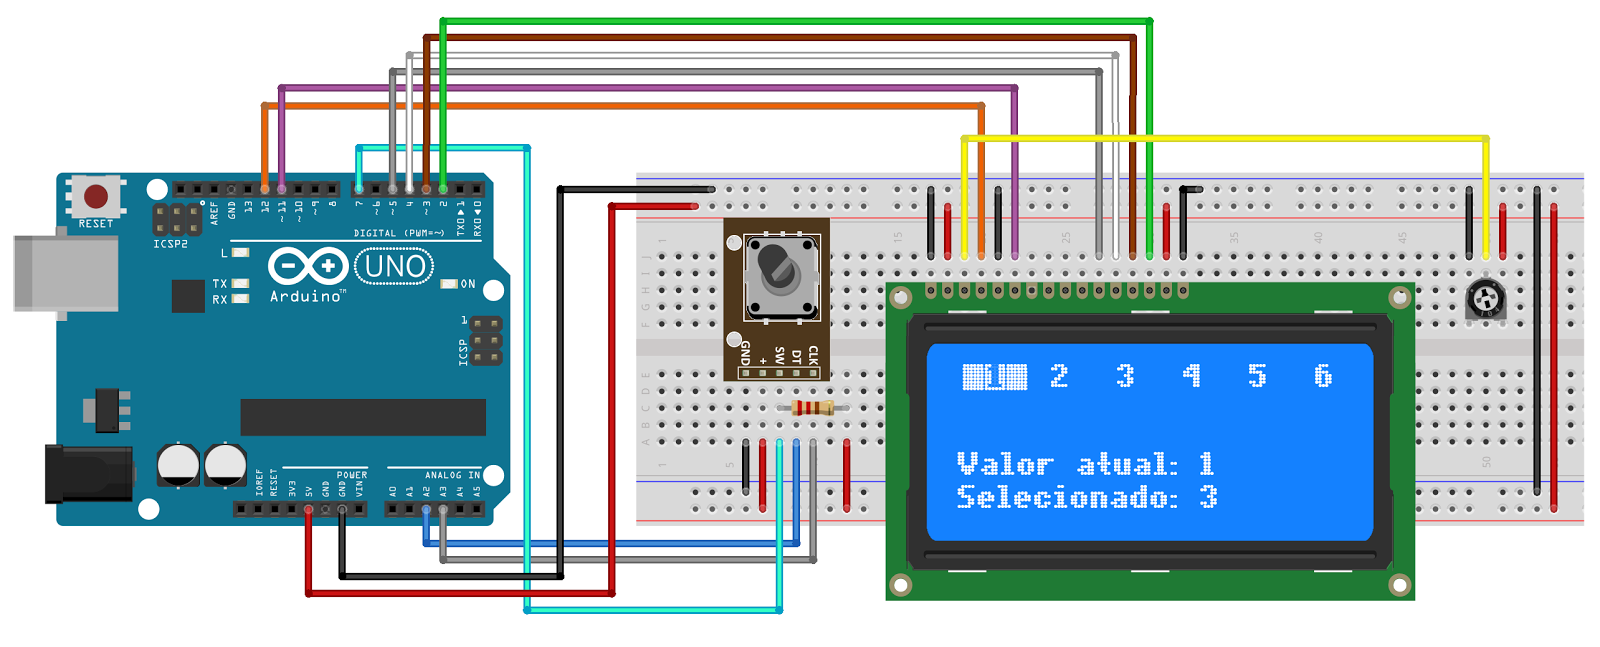 D882 Datasheet Pdf Npn Transistor further Rfid With Arduino Uno Tutorial besides Peugeot 206 Engine Sd Sensor Location further 10 Band Graphic Equalizer Circuit furthermore o Usar Encoder Rotativo Ky 040 Arduino. on sd sensor circuit